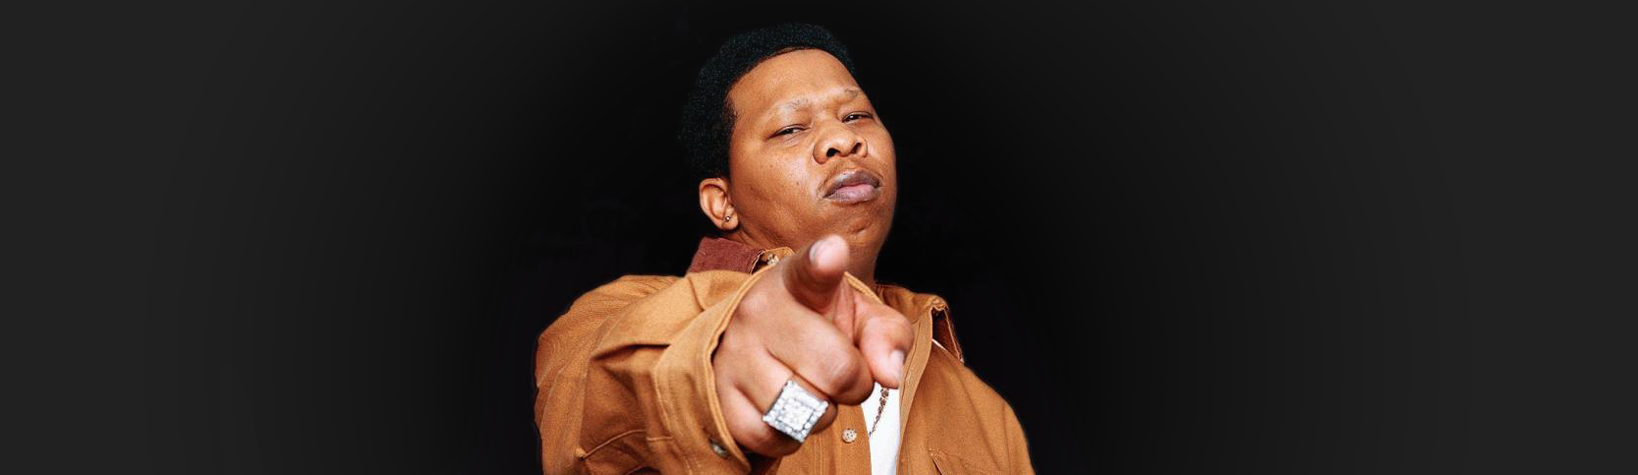 Gregory D and Mannie Fresh DJ Mannie Fresh Clap To This